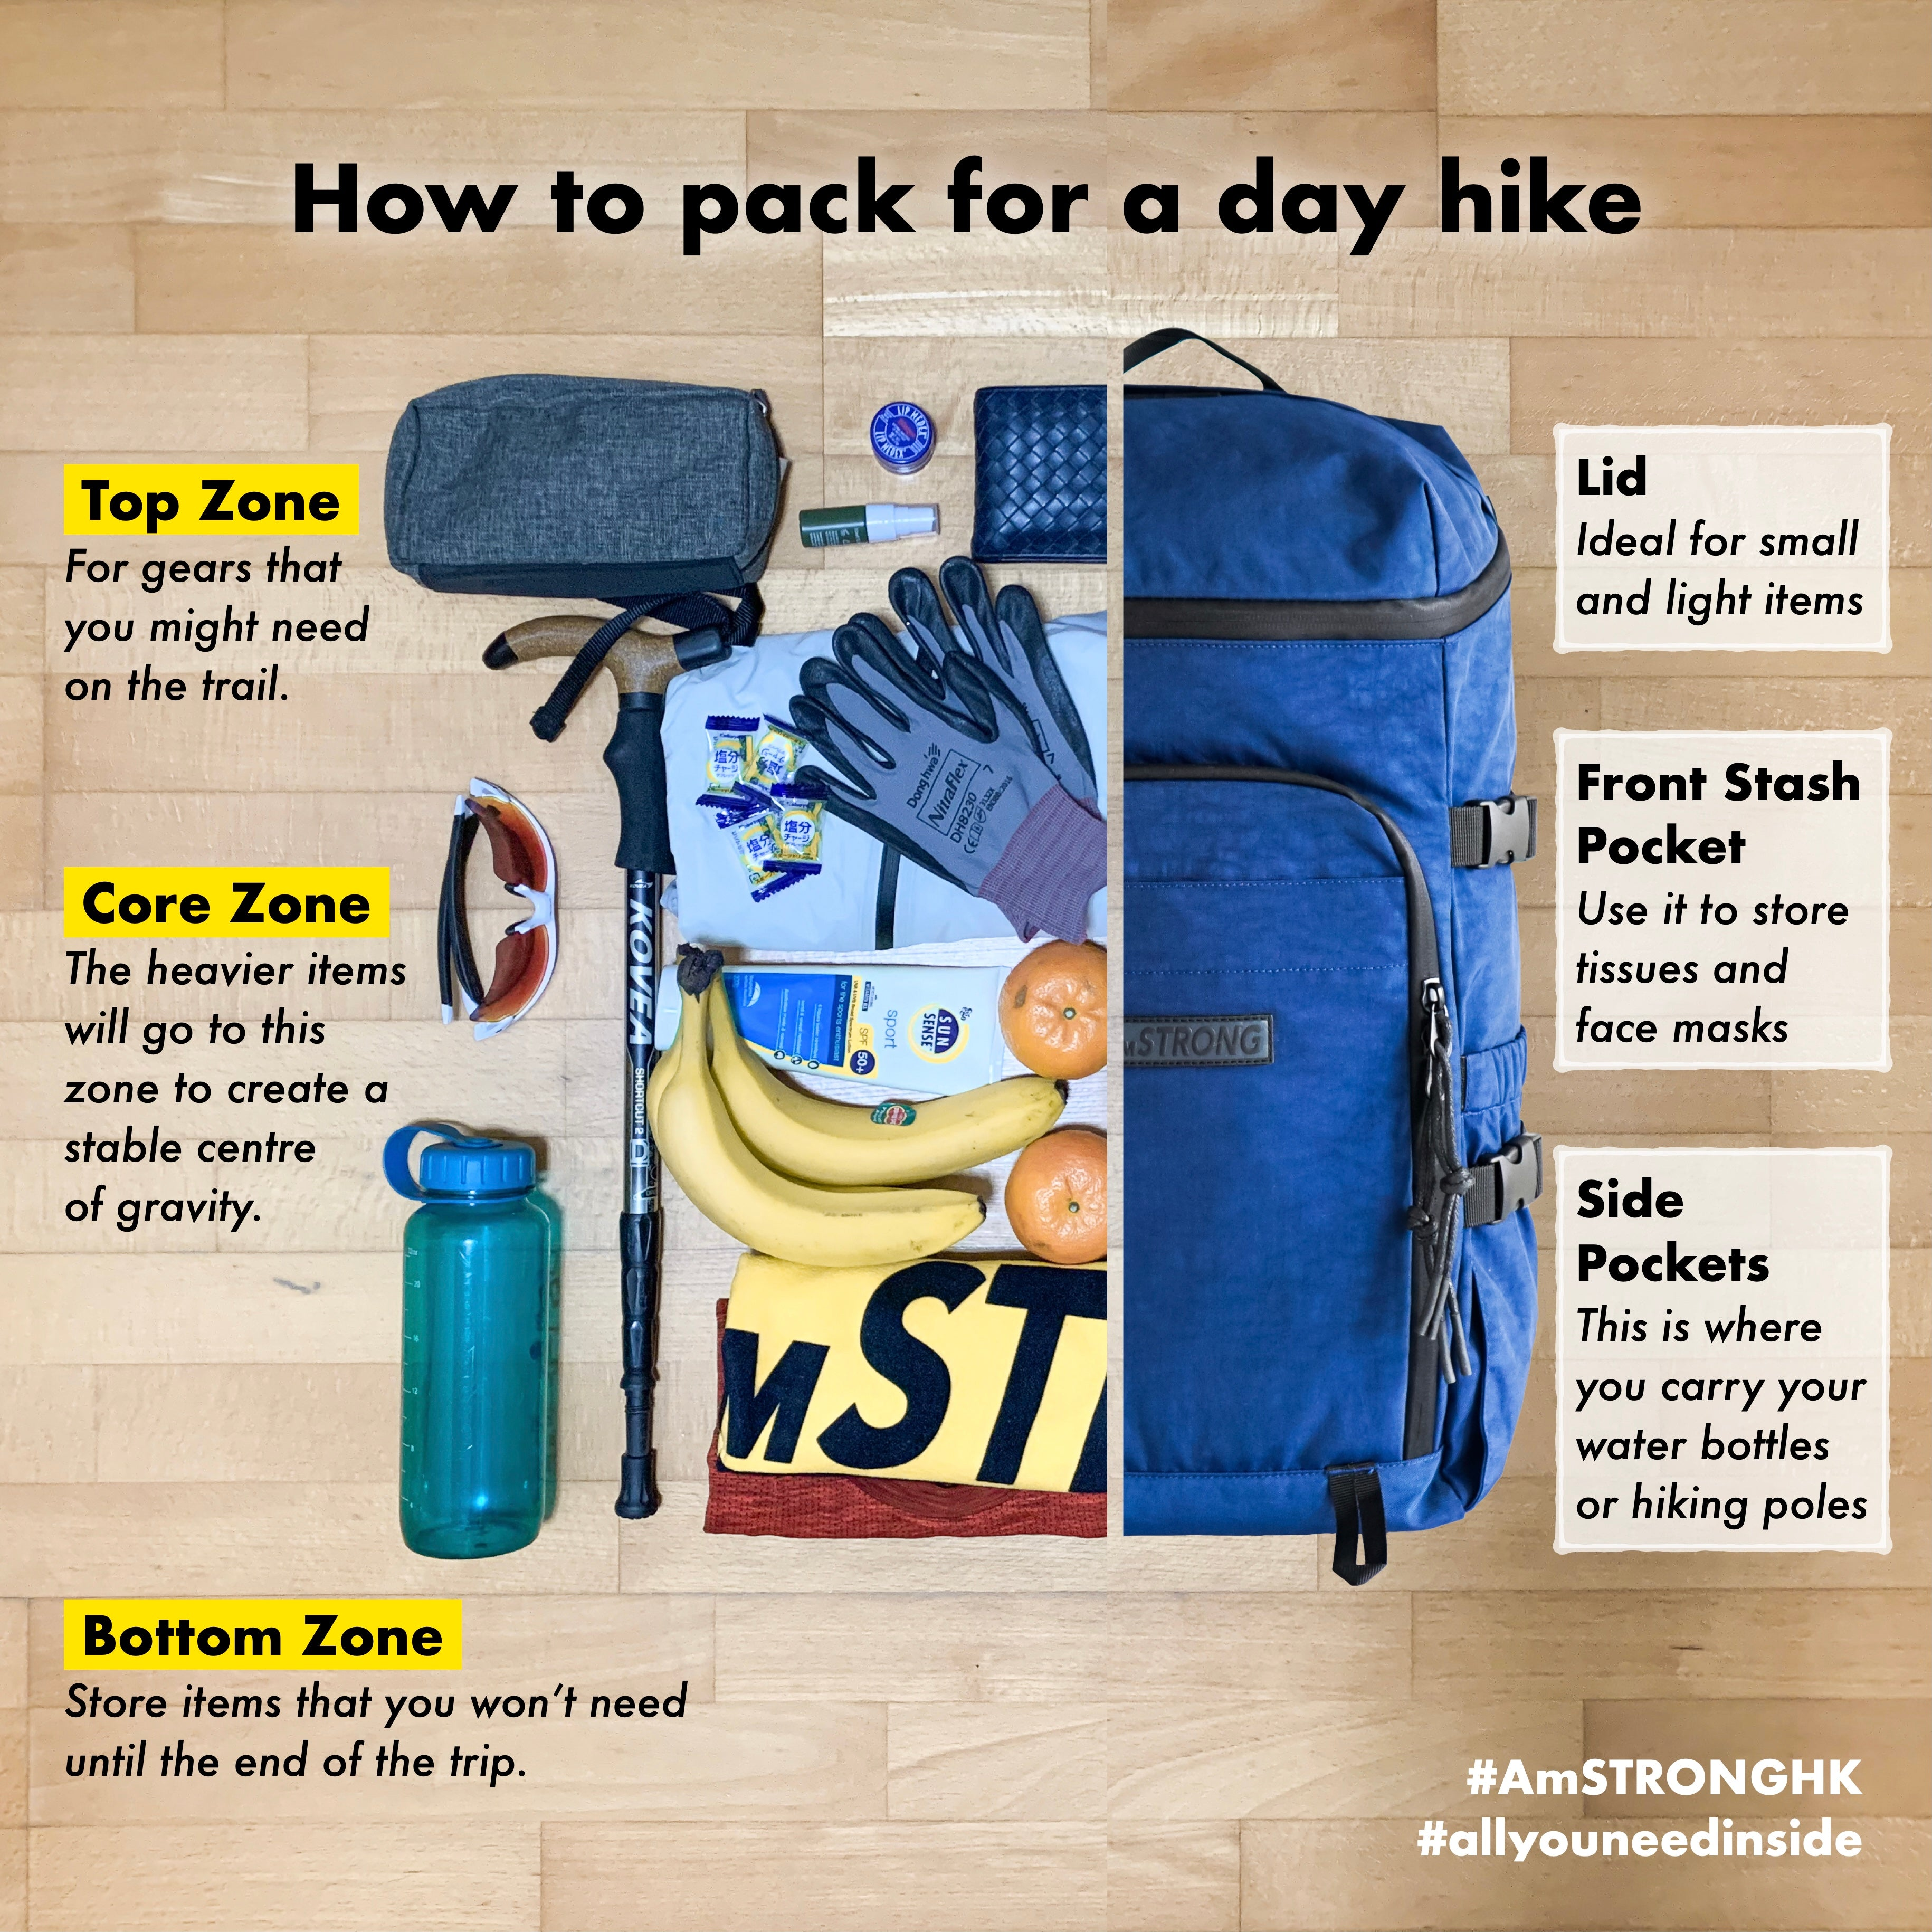 AmSTRONG | How to pack a backpack